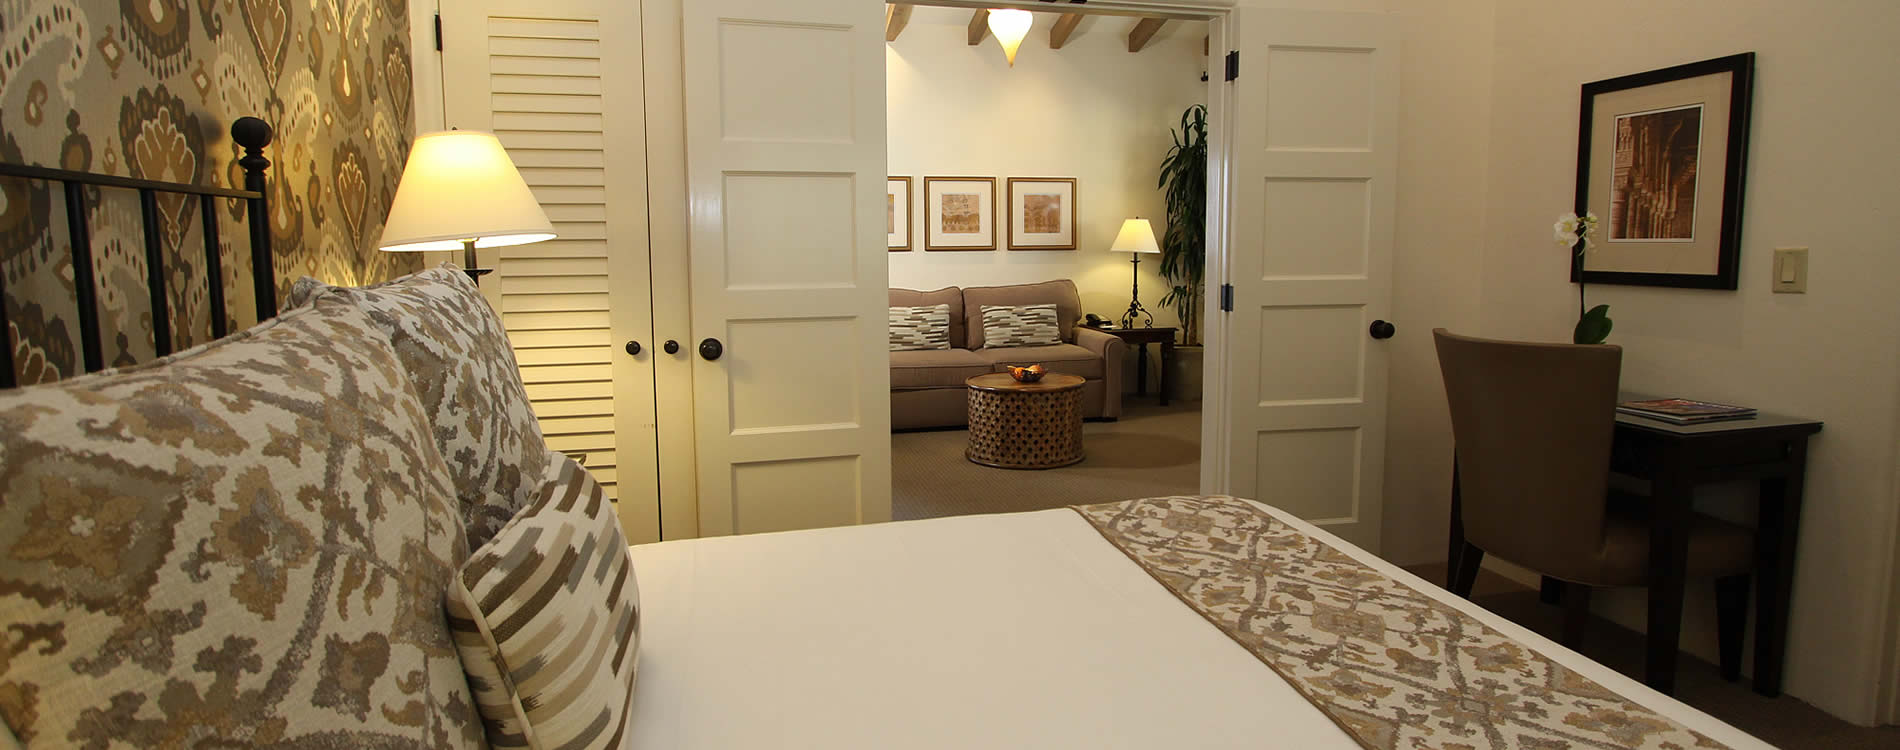 website design photography boutique hotels, bed and breakfasts